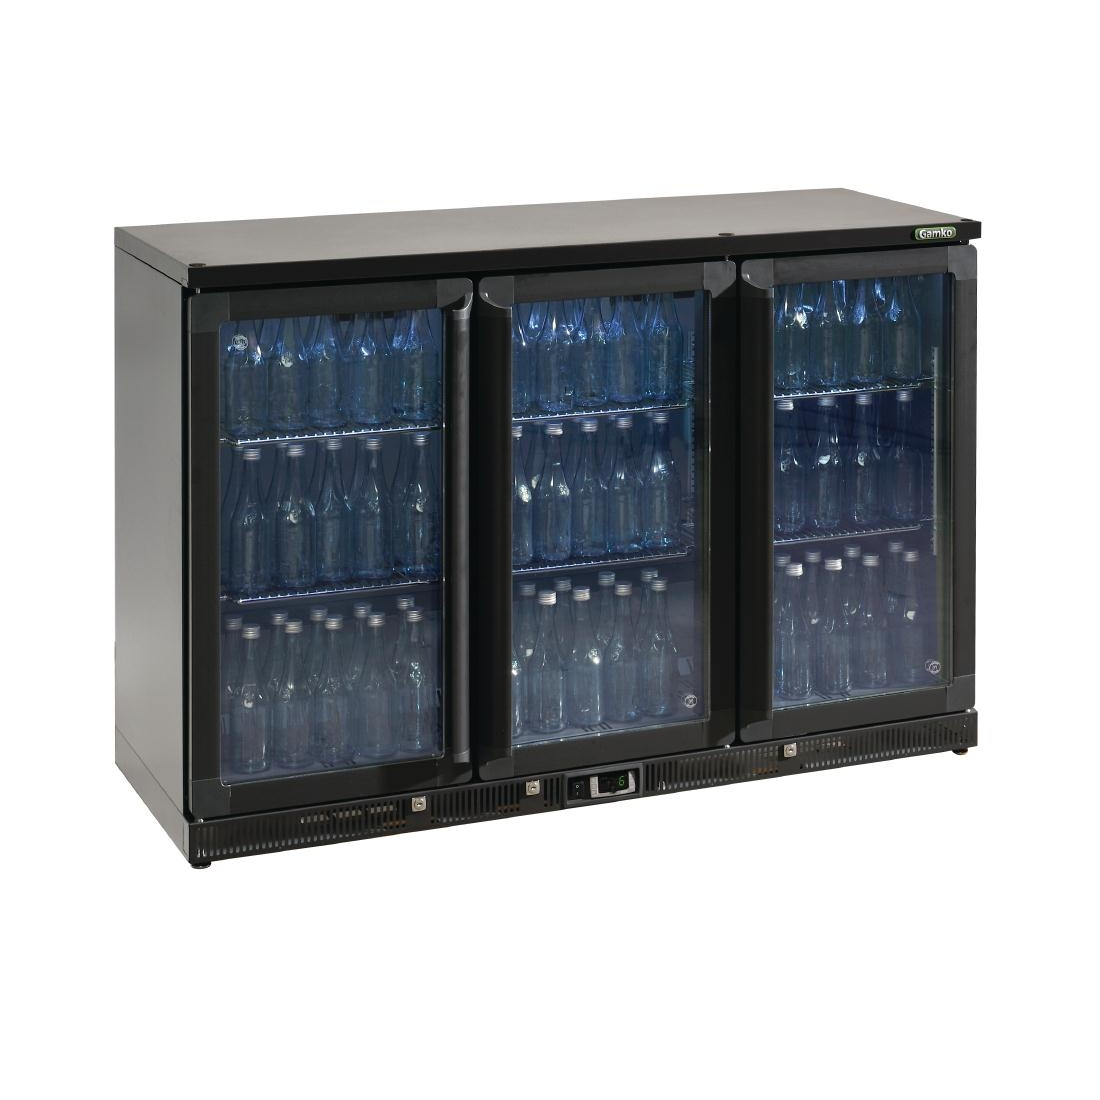 Gamko Bottle Cooler - Triple Hinged Door 315 Ltr Black